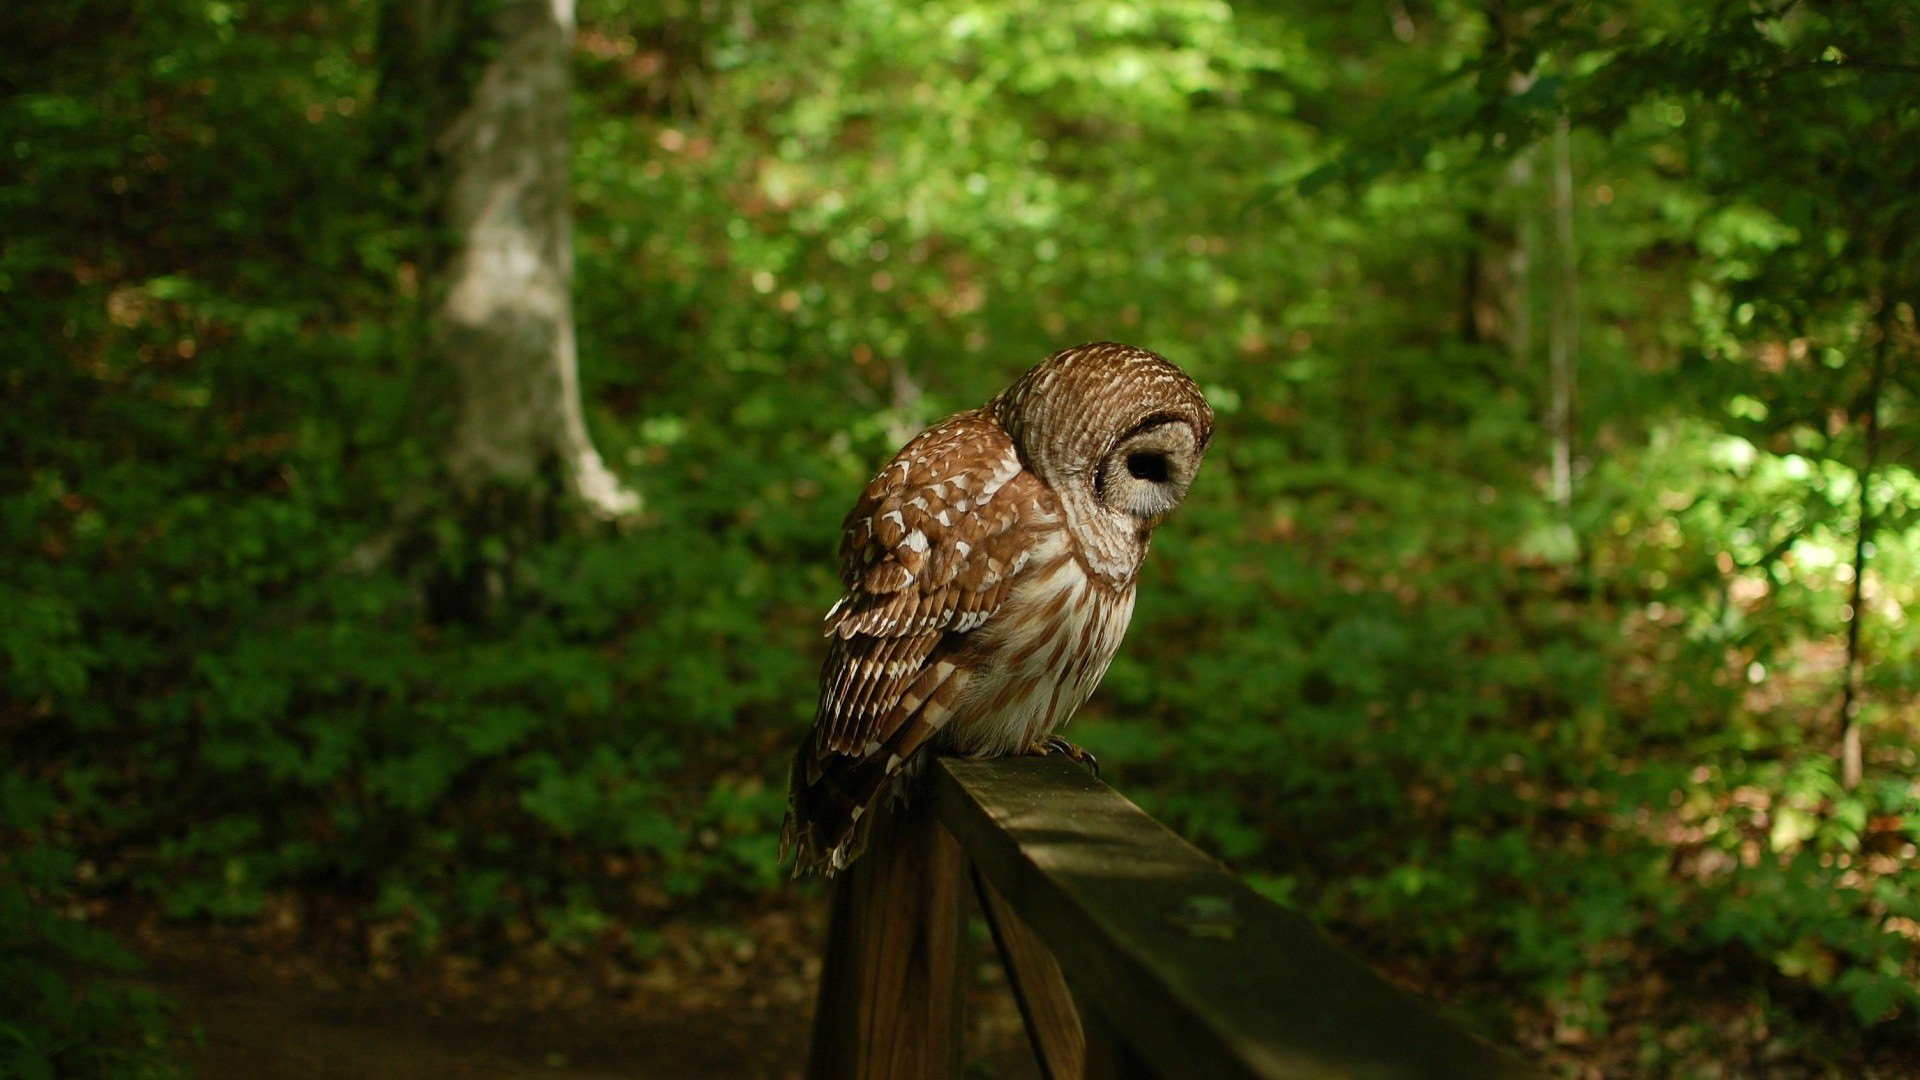 Green Shade Owl Wallpaper